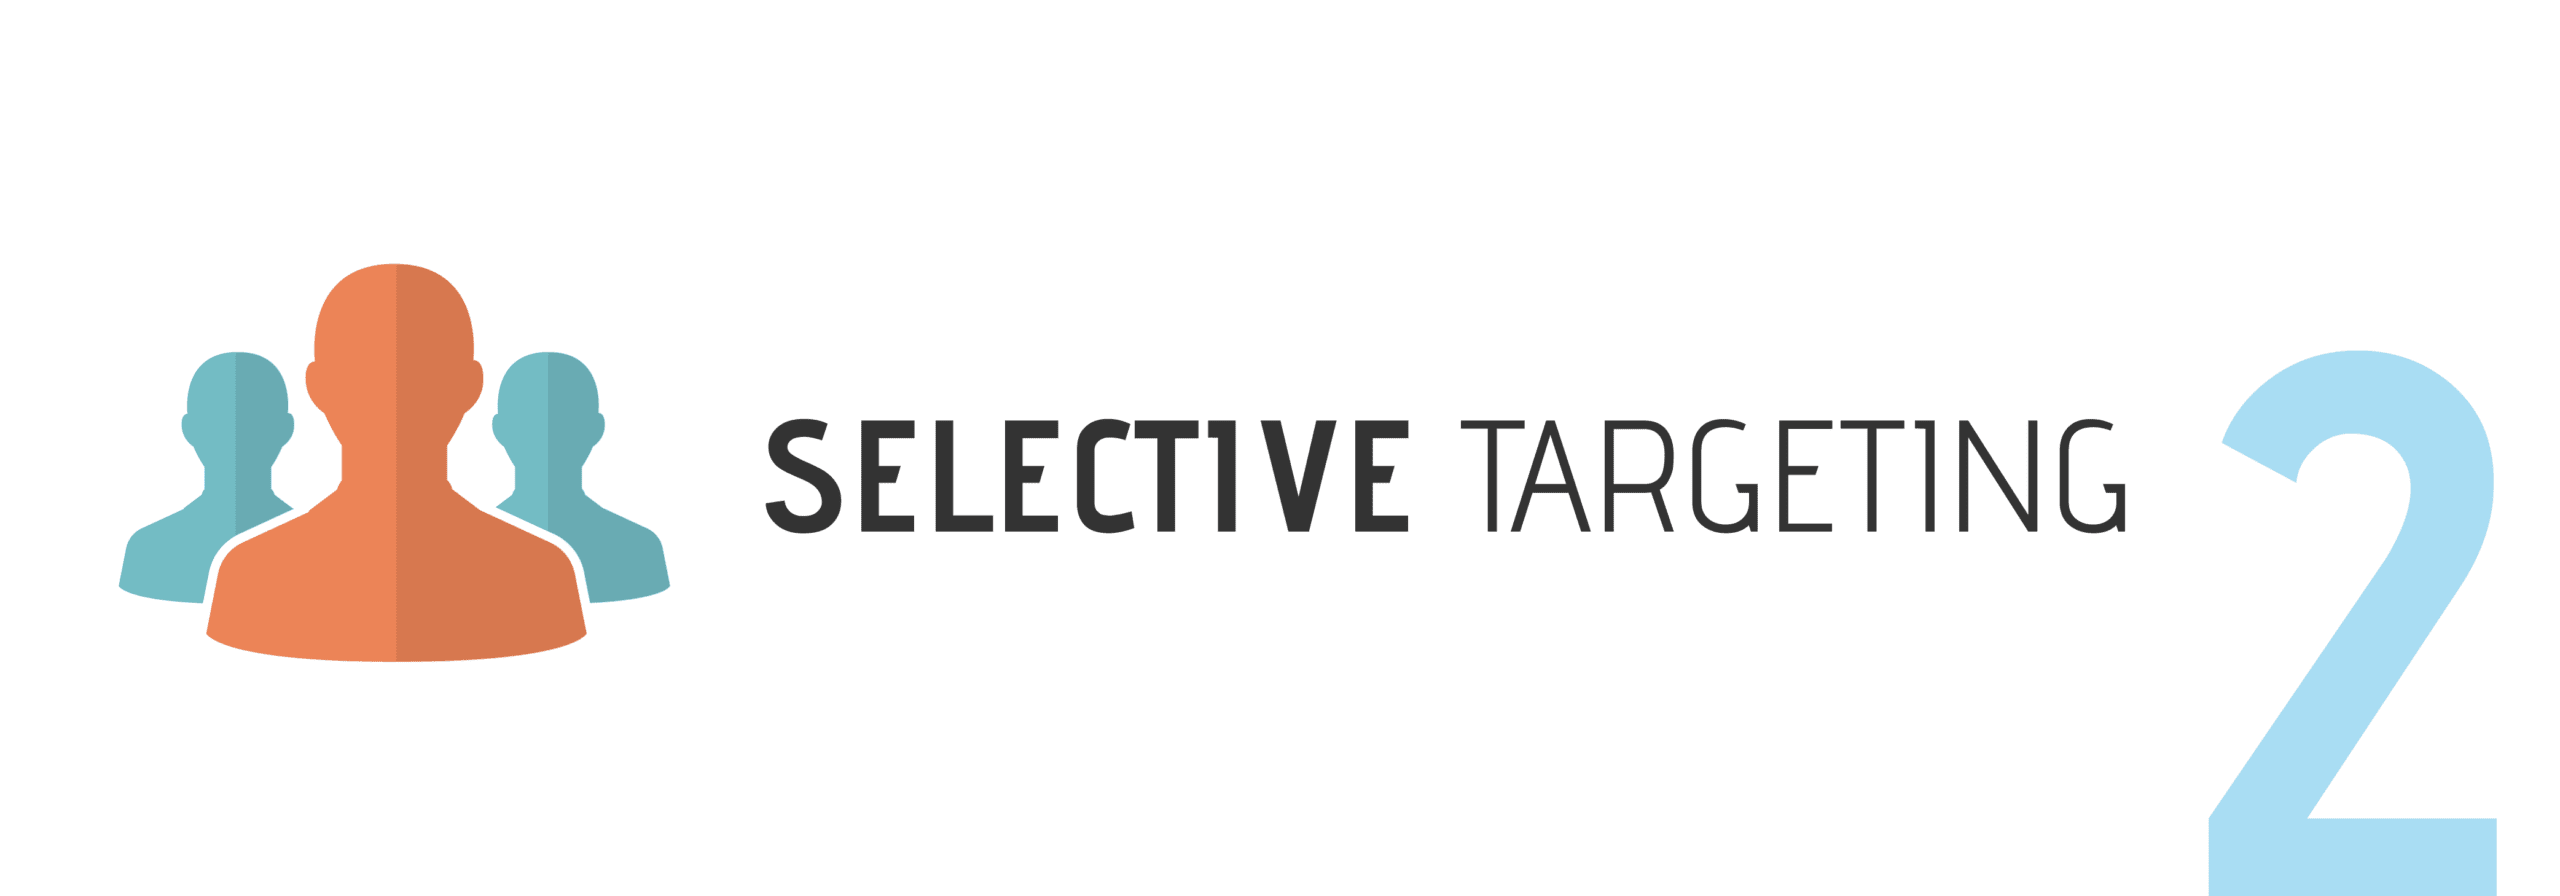 Selective targeting is one of the greatest benefits of digital marketing.